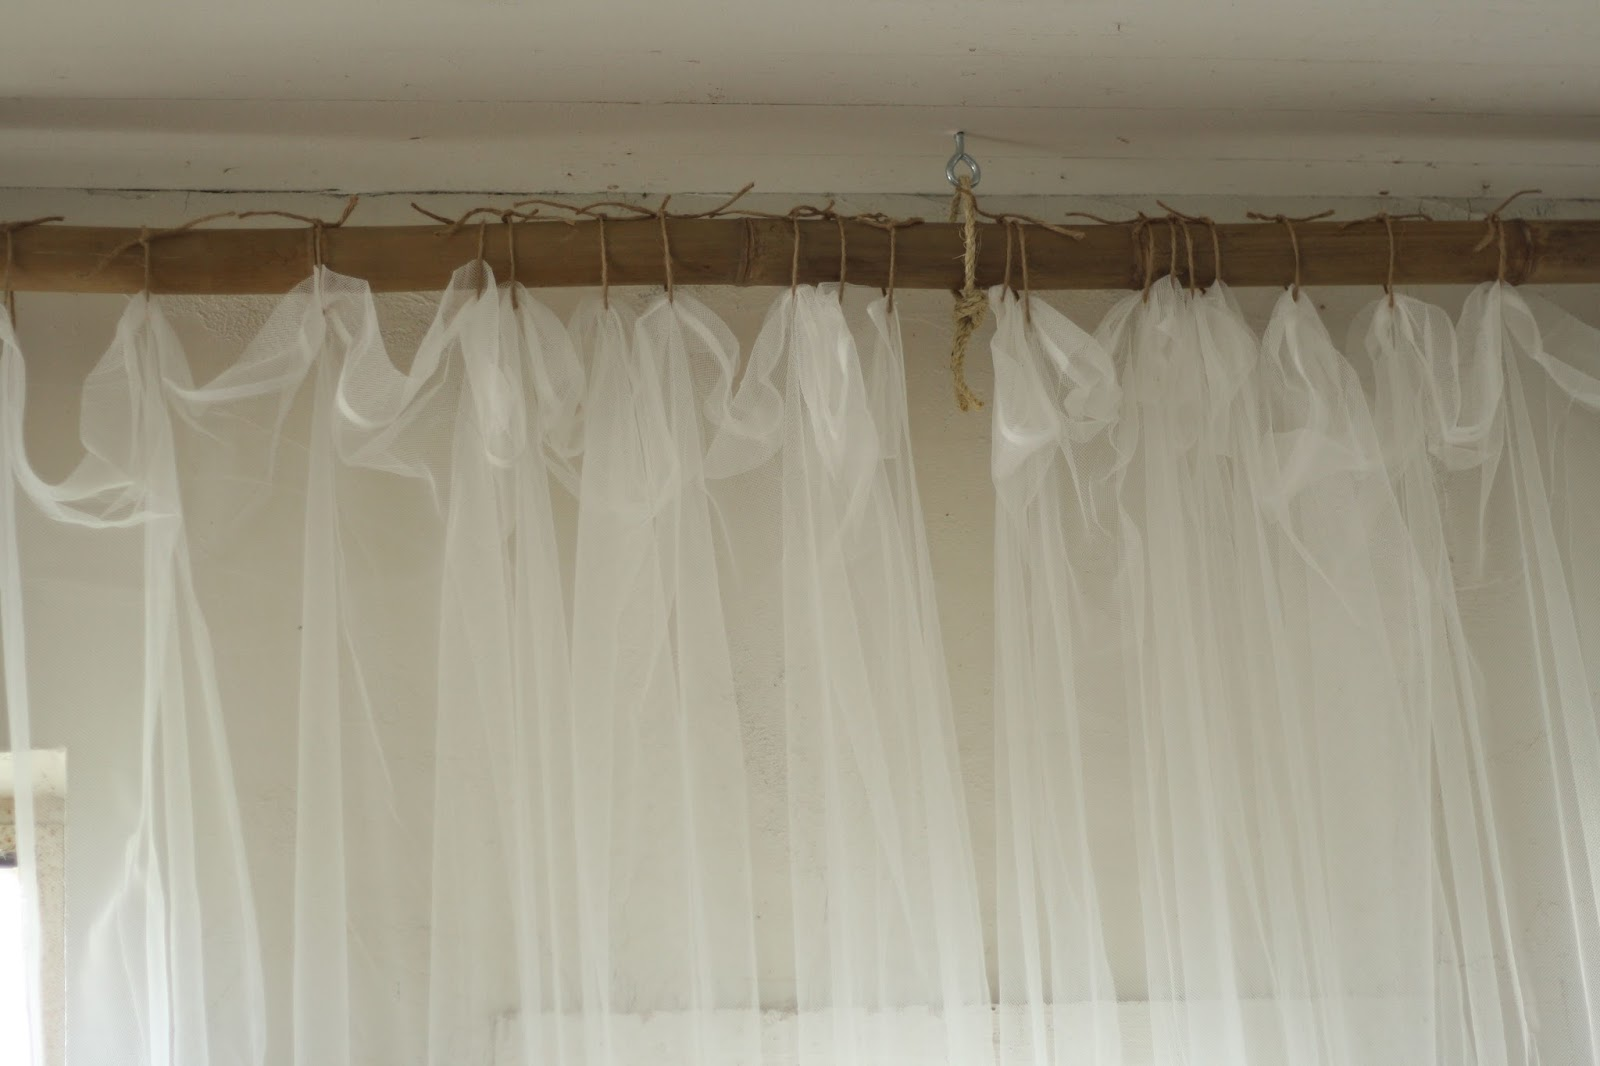 Primitive and proper jute rope and bamboo curtain hanging system via remodelaholic